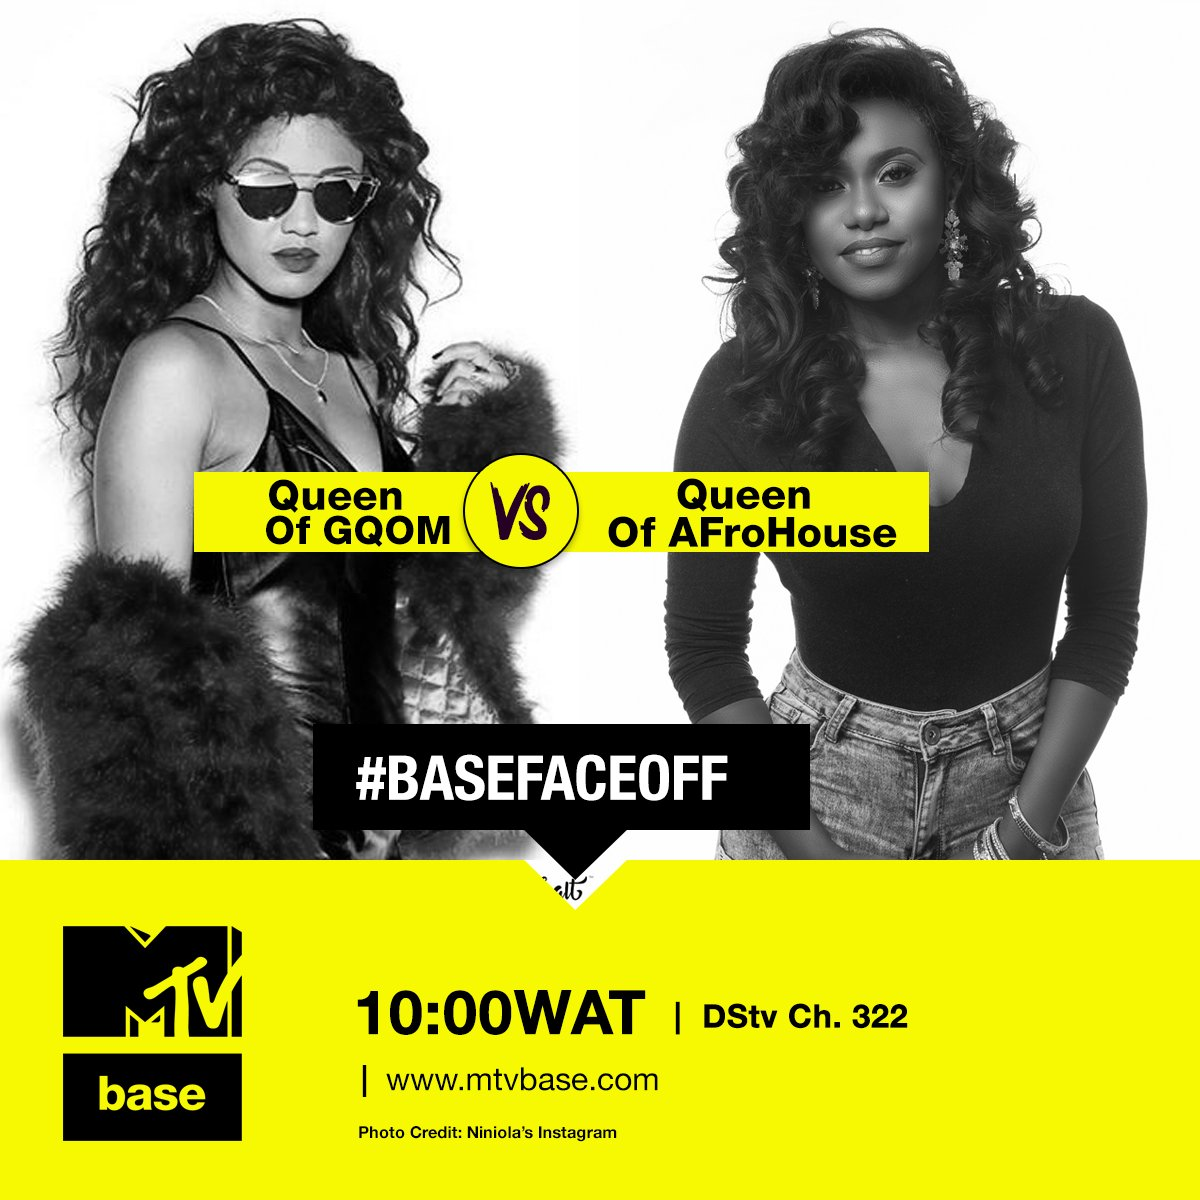 🤜 #BaseFaceOff 🤛  It's about that time to enjoy music from your two favs #Queens, @BABESWODUMO and @OfficialNiniola 🔥   You're in for a hella treat with our playlist today. We still wanna know who's your fav?? Tweet us and tune in to #MTVBaseCh322 @ 10:00 WAT [ @DStvNg ]